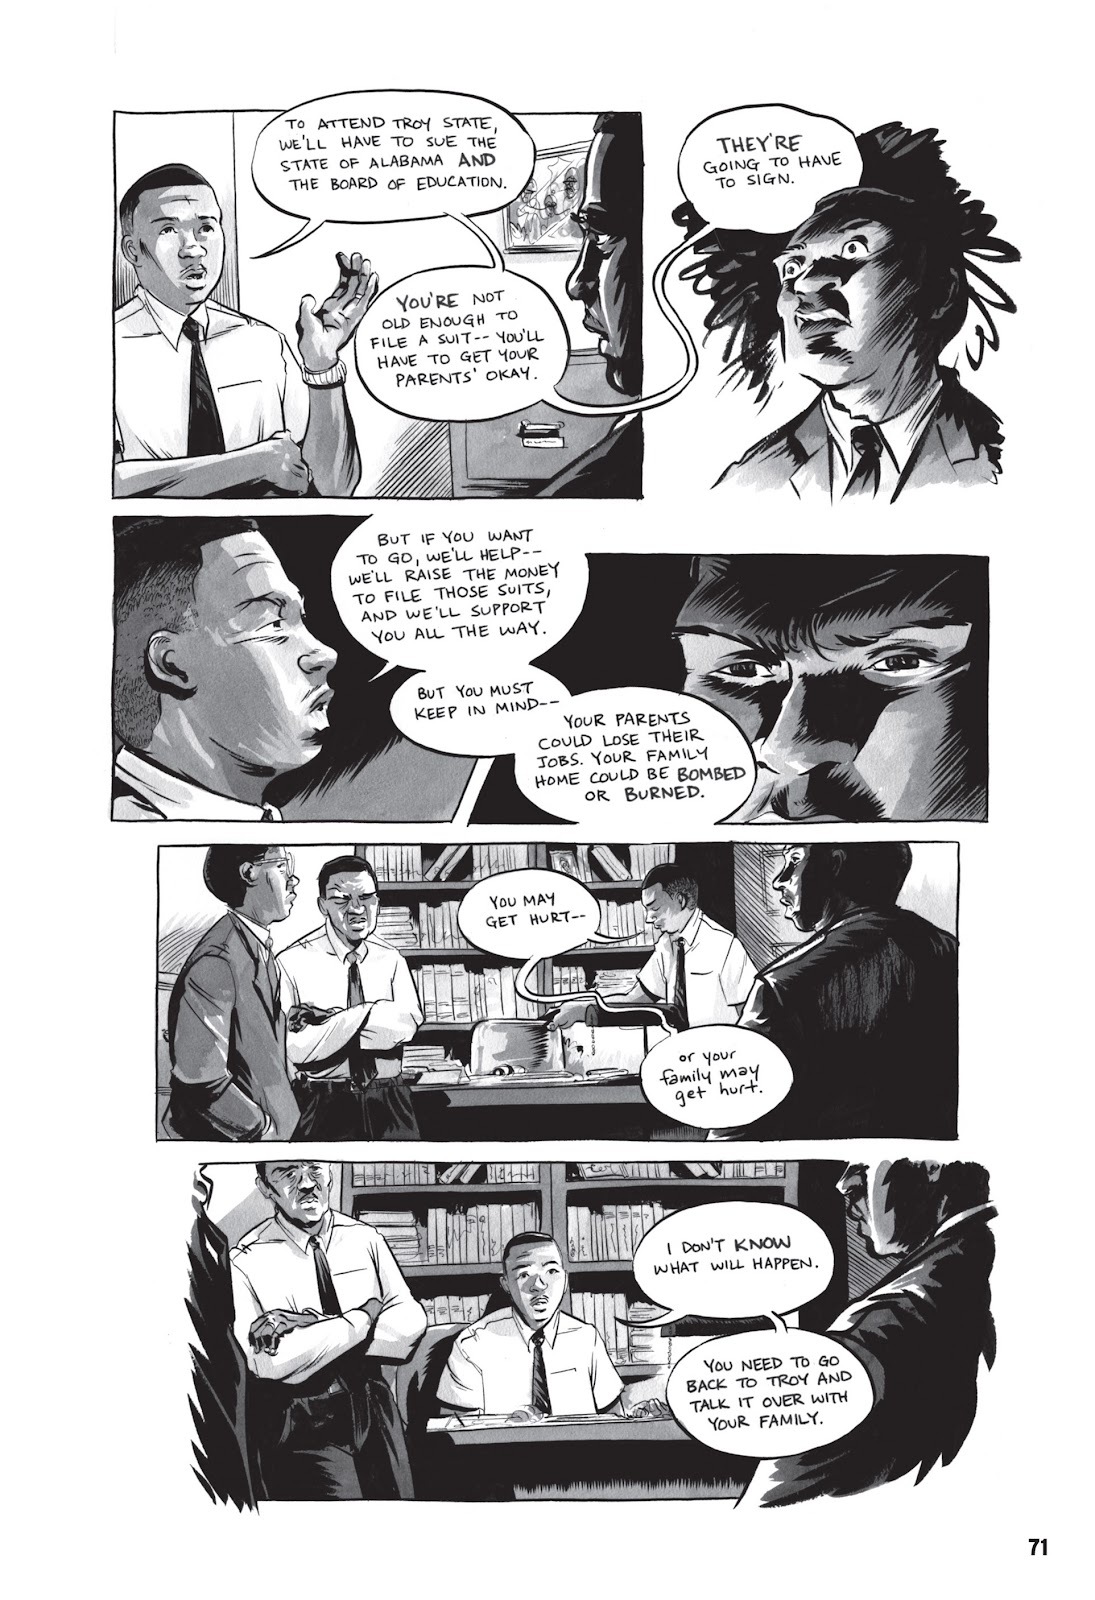 March 1 Page 68